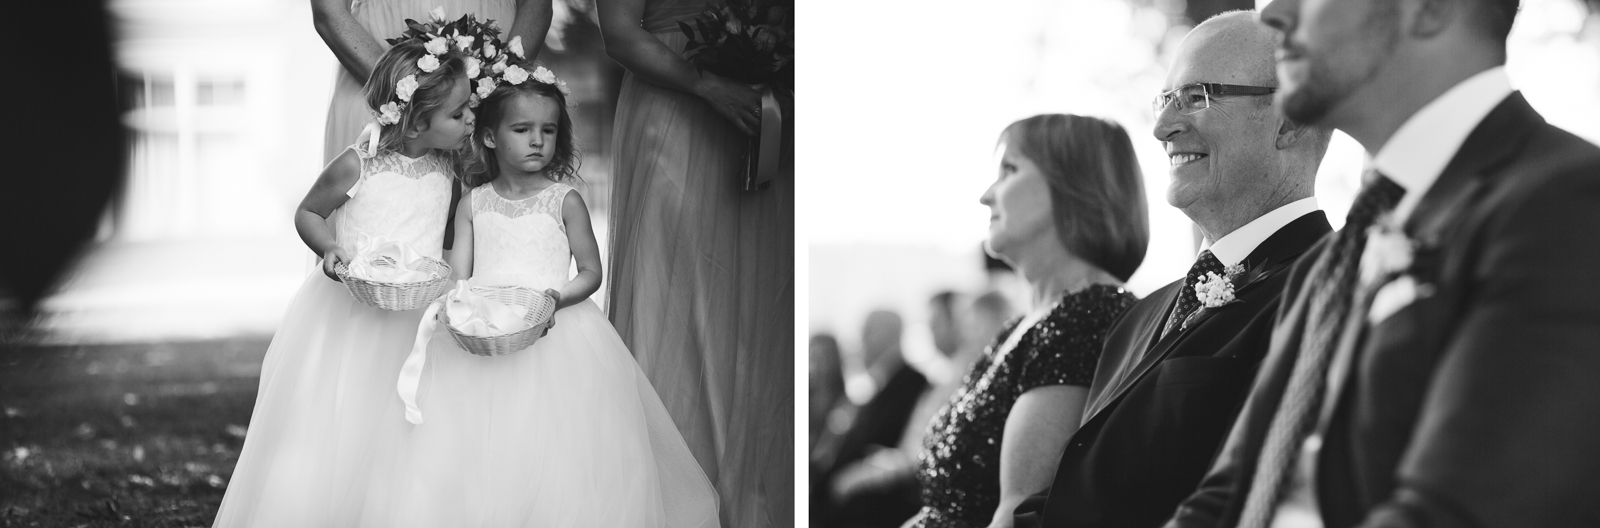 36-willow_and_wolf_photography_nicole_and_gary_cranbrook_wedding_blog